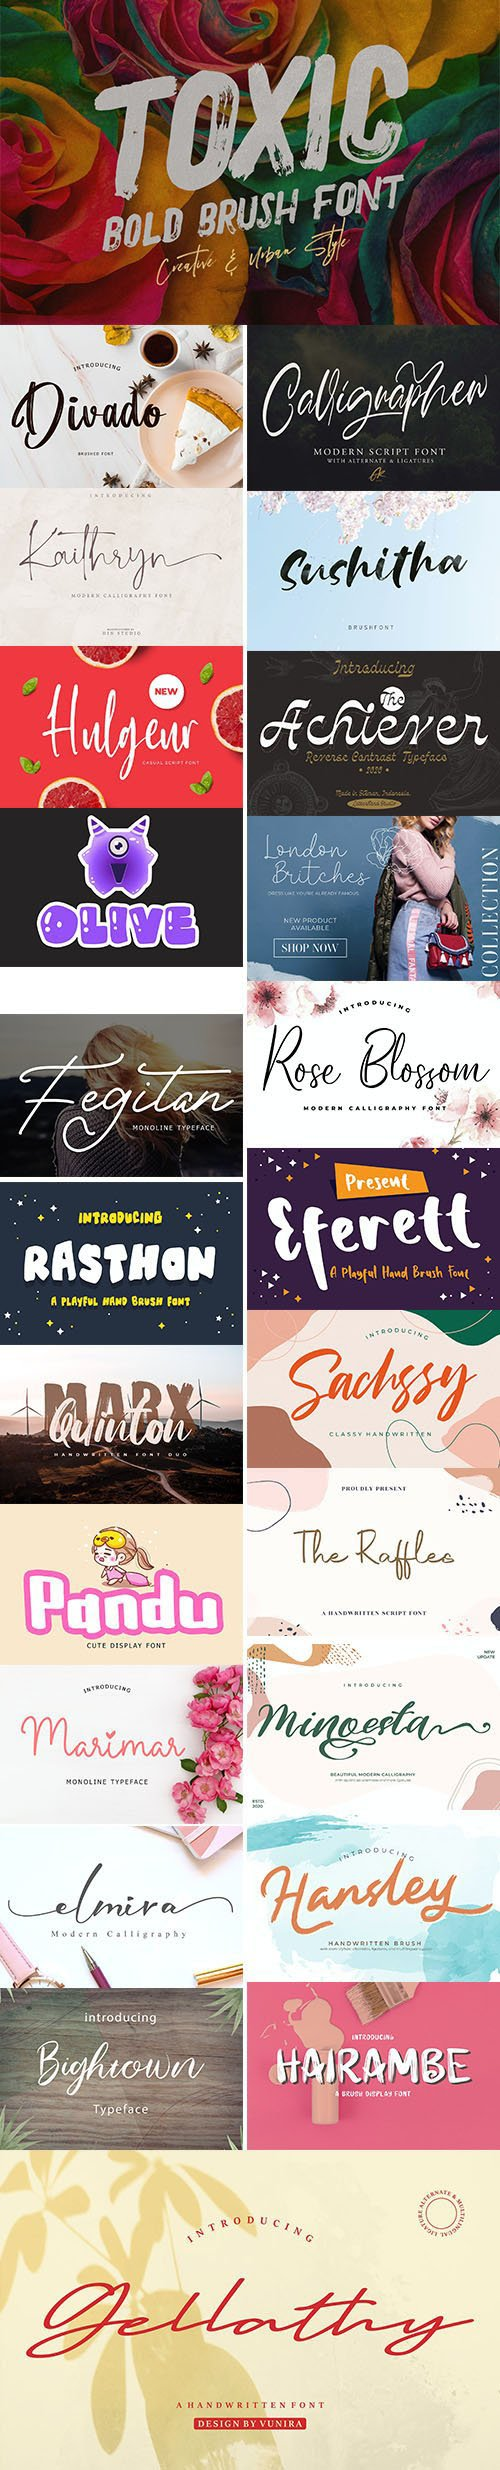 Super Modern Fresh Creative Fonts - 29 Fonts